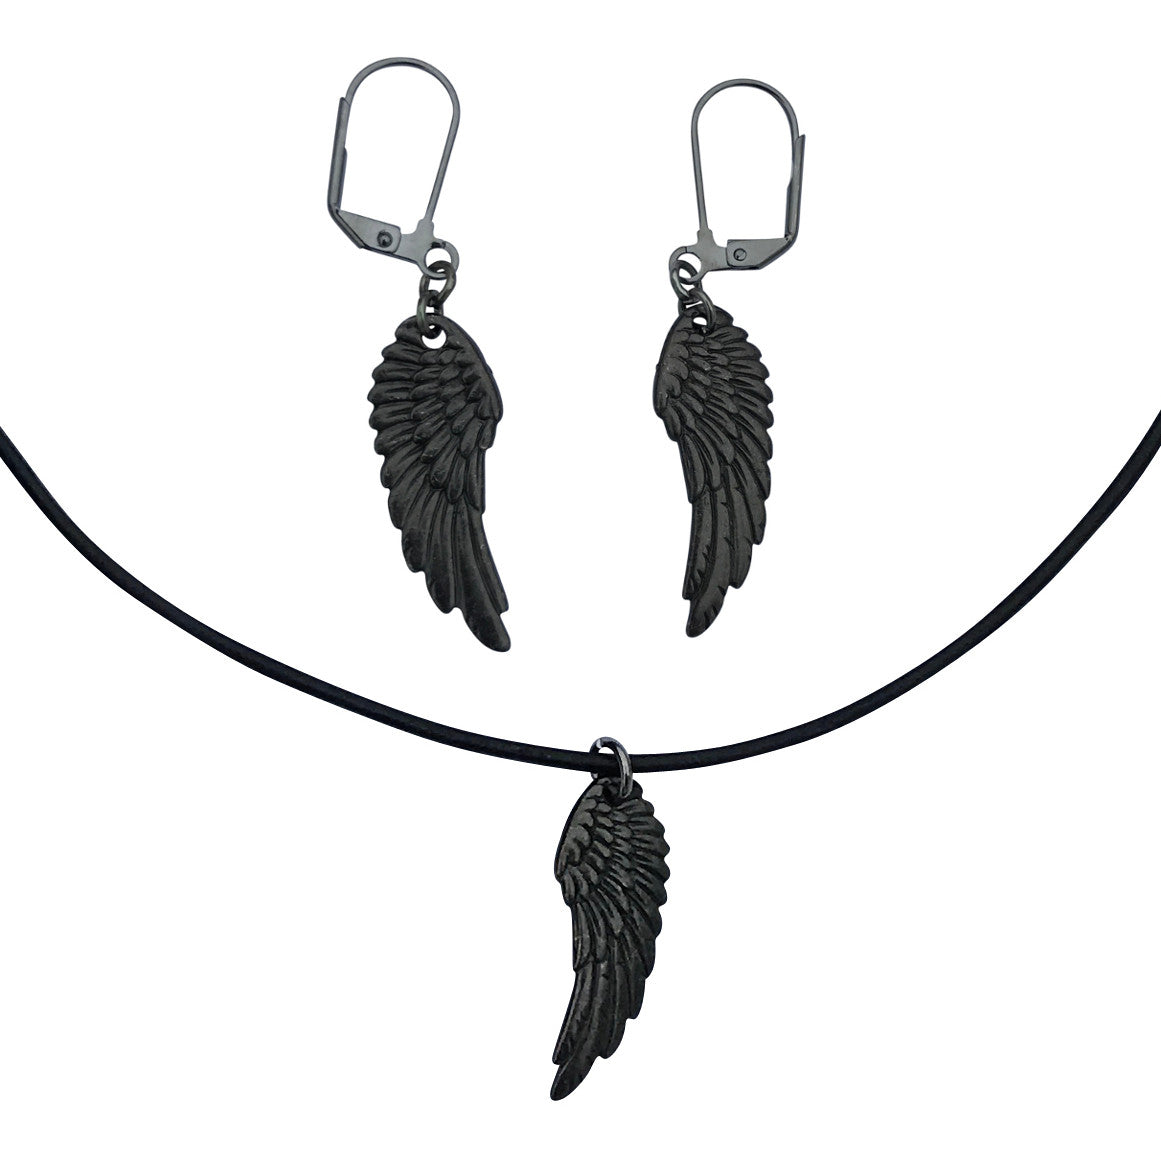 Dragonweave raven wing charm necklace and earring set gunmetal dragonweave raven wing charm necklace and earring set gunmetal black leather choker and leverback earrings buycottarizona Gallery